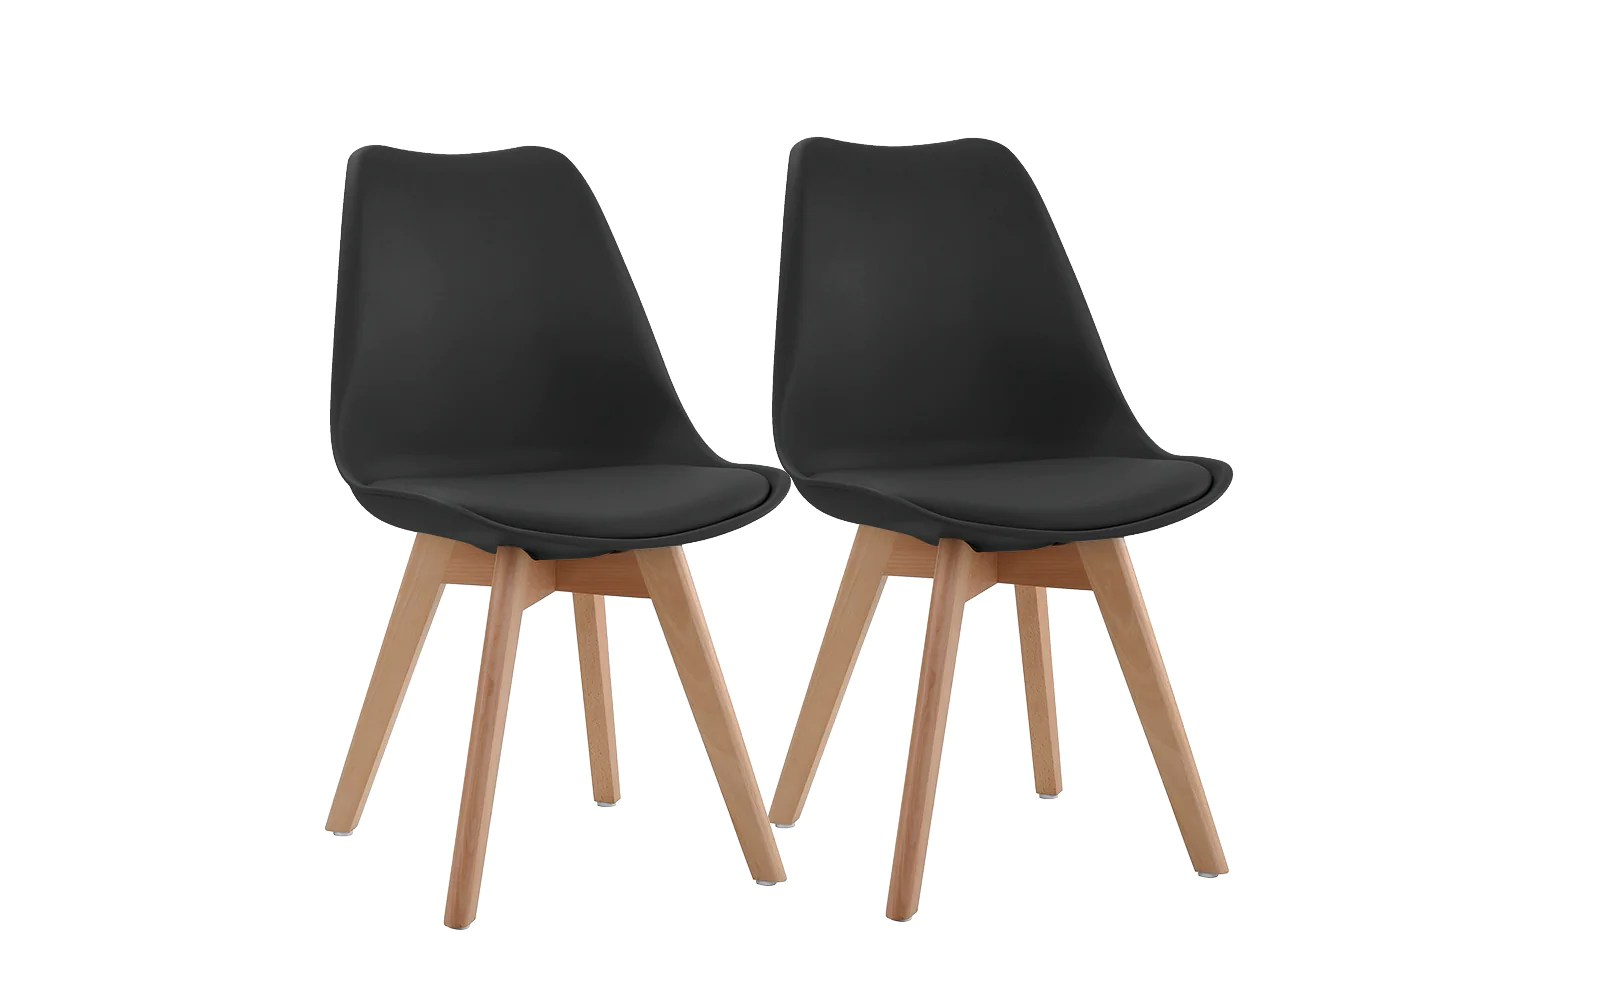 Modern Leather Chairs Shi Set Of 2 Modern Leather Kitchen Chairs